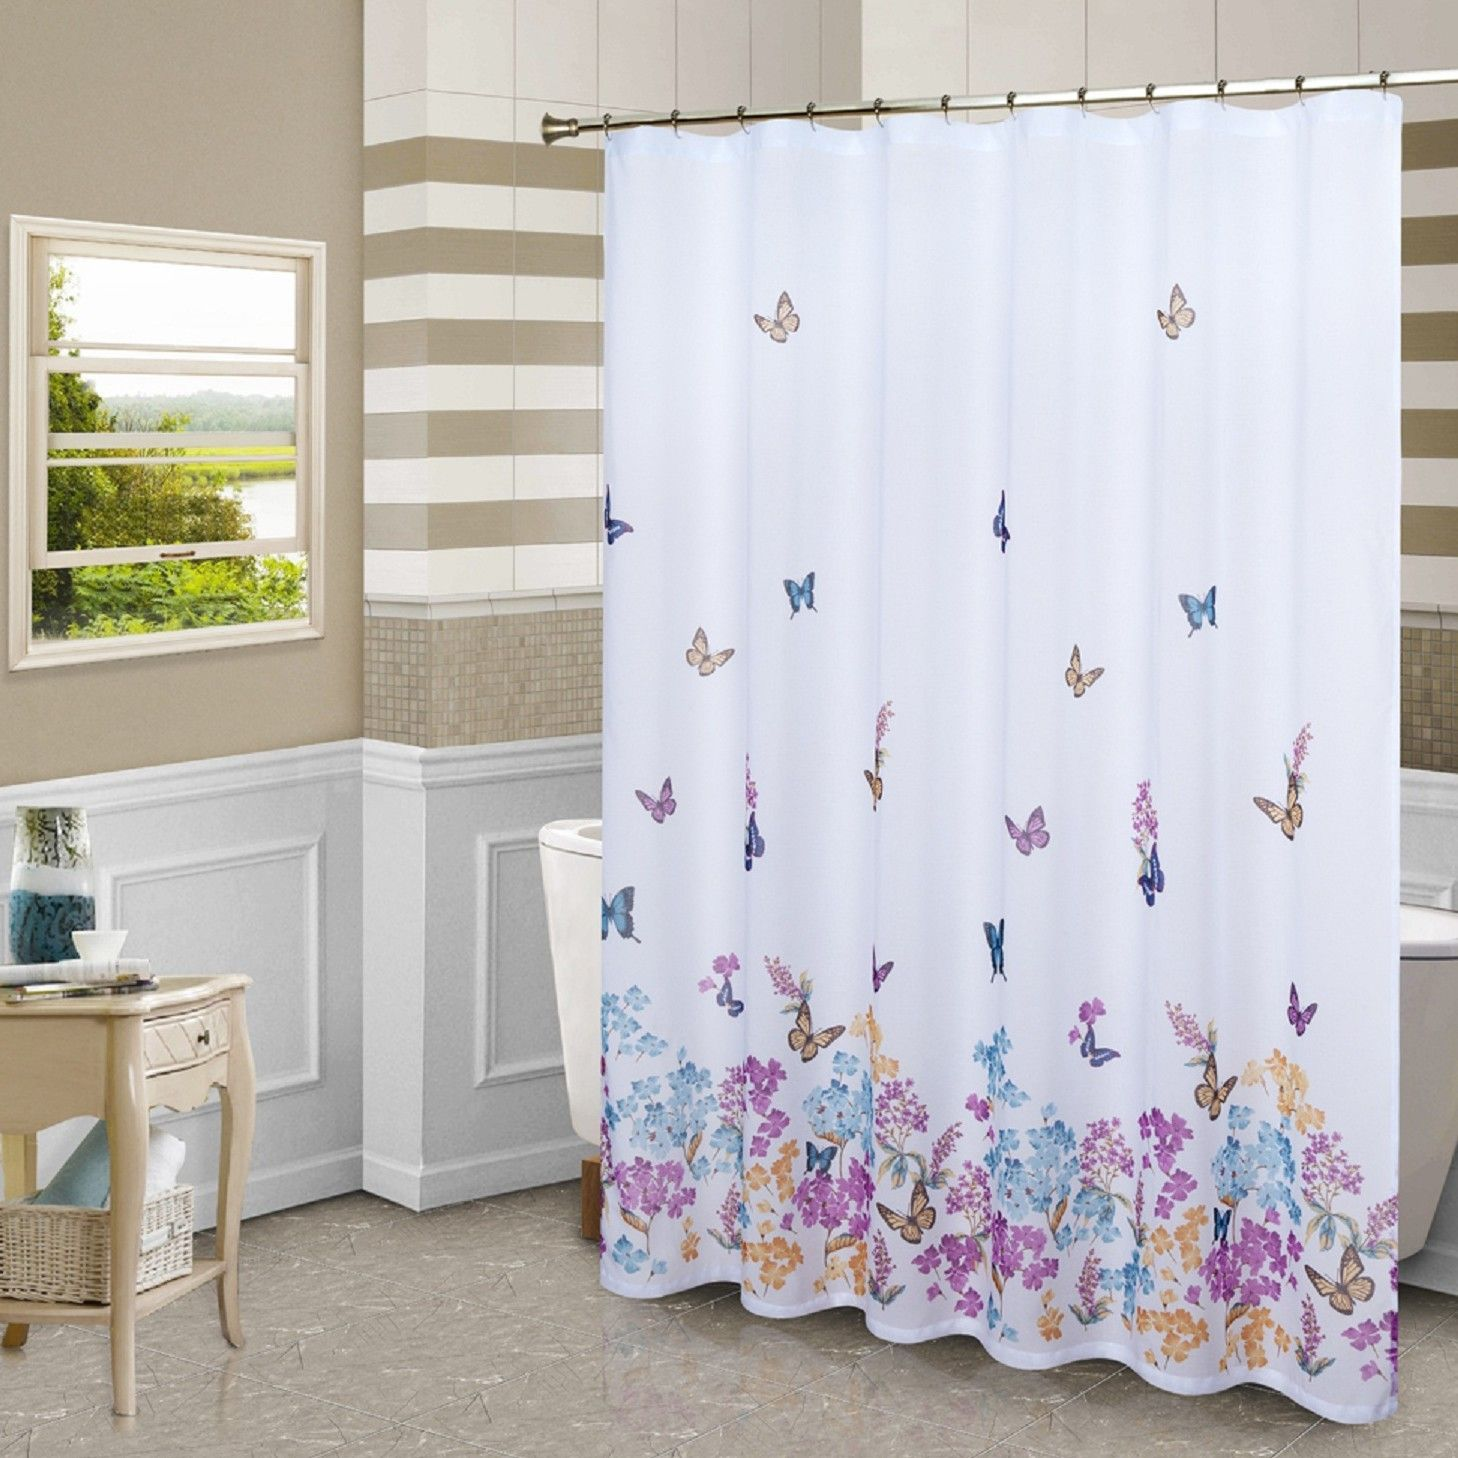 Machine Wash Cold Tumble Dry Low Cool Iron Never Bleach Color Multi Colored Theme Wildlife Product Type Shower Curtain